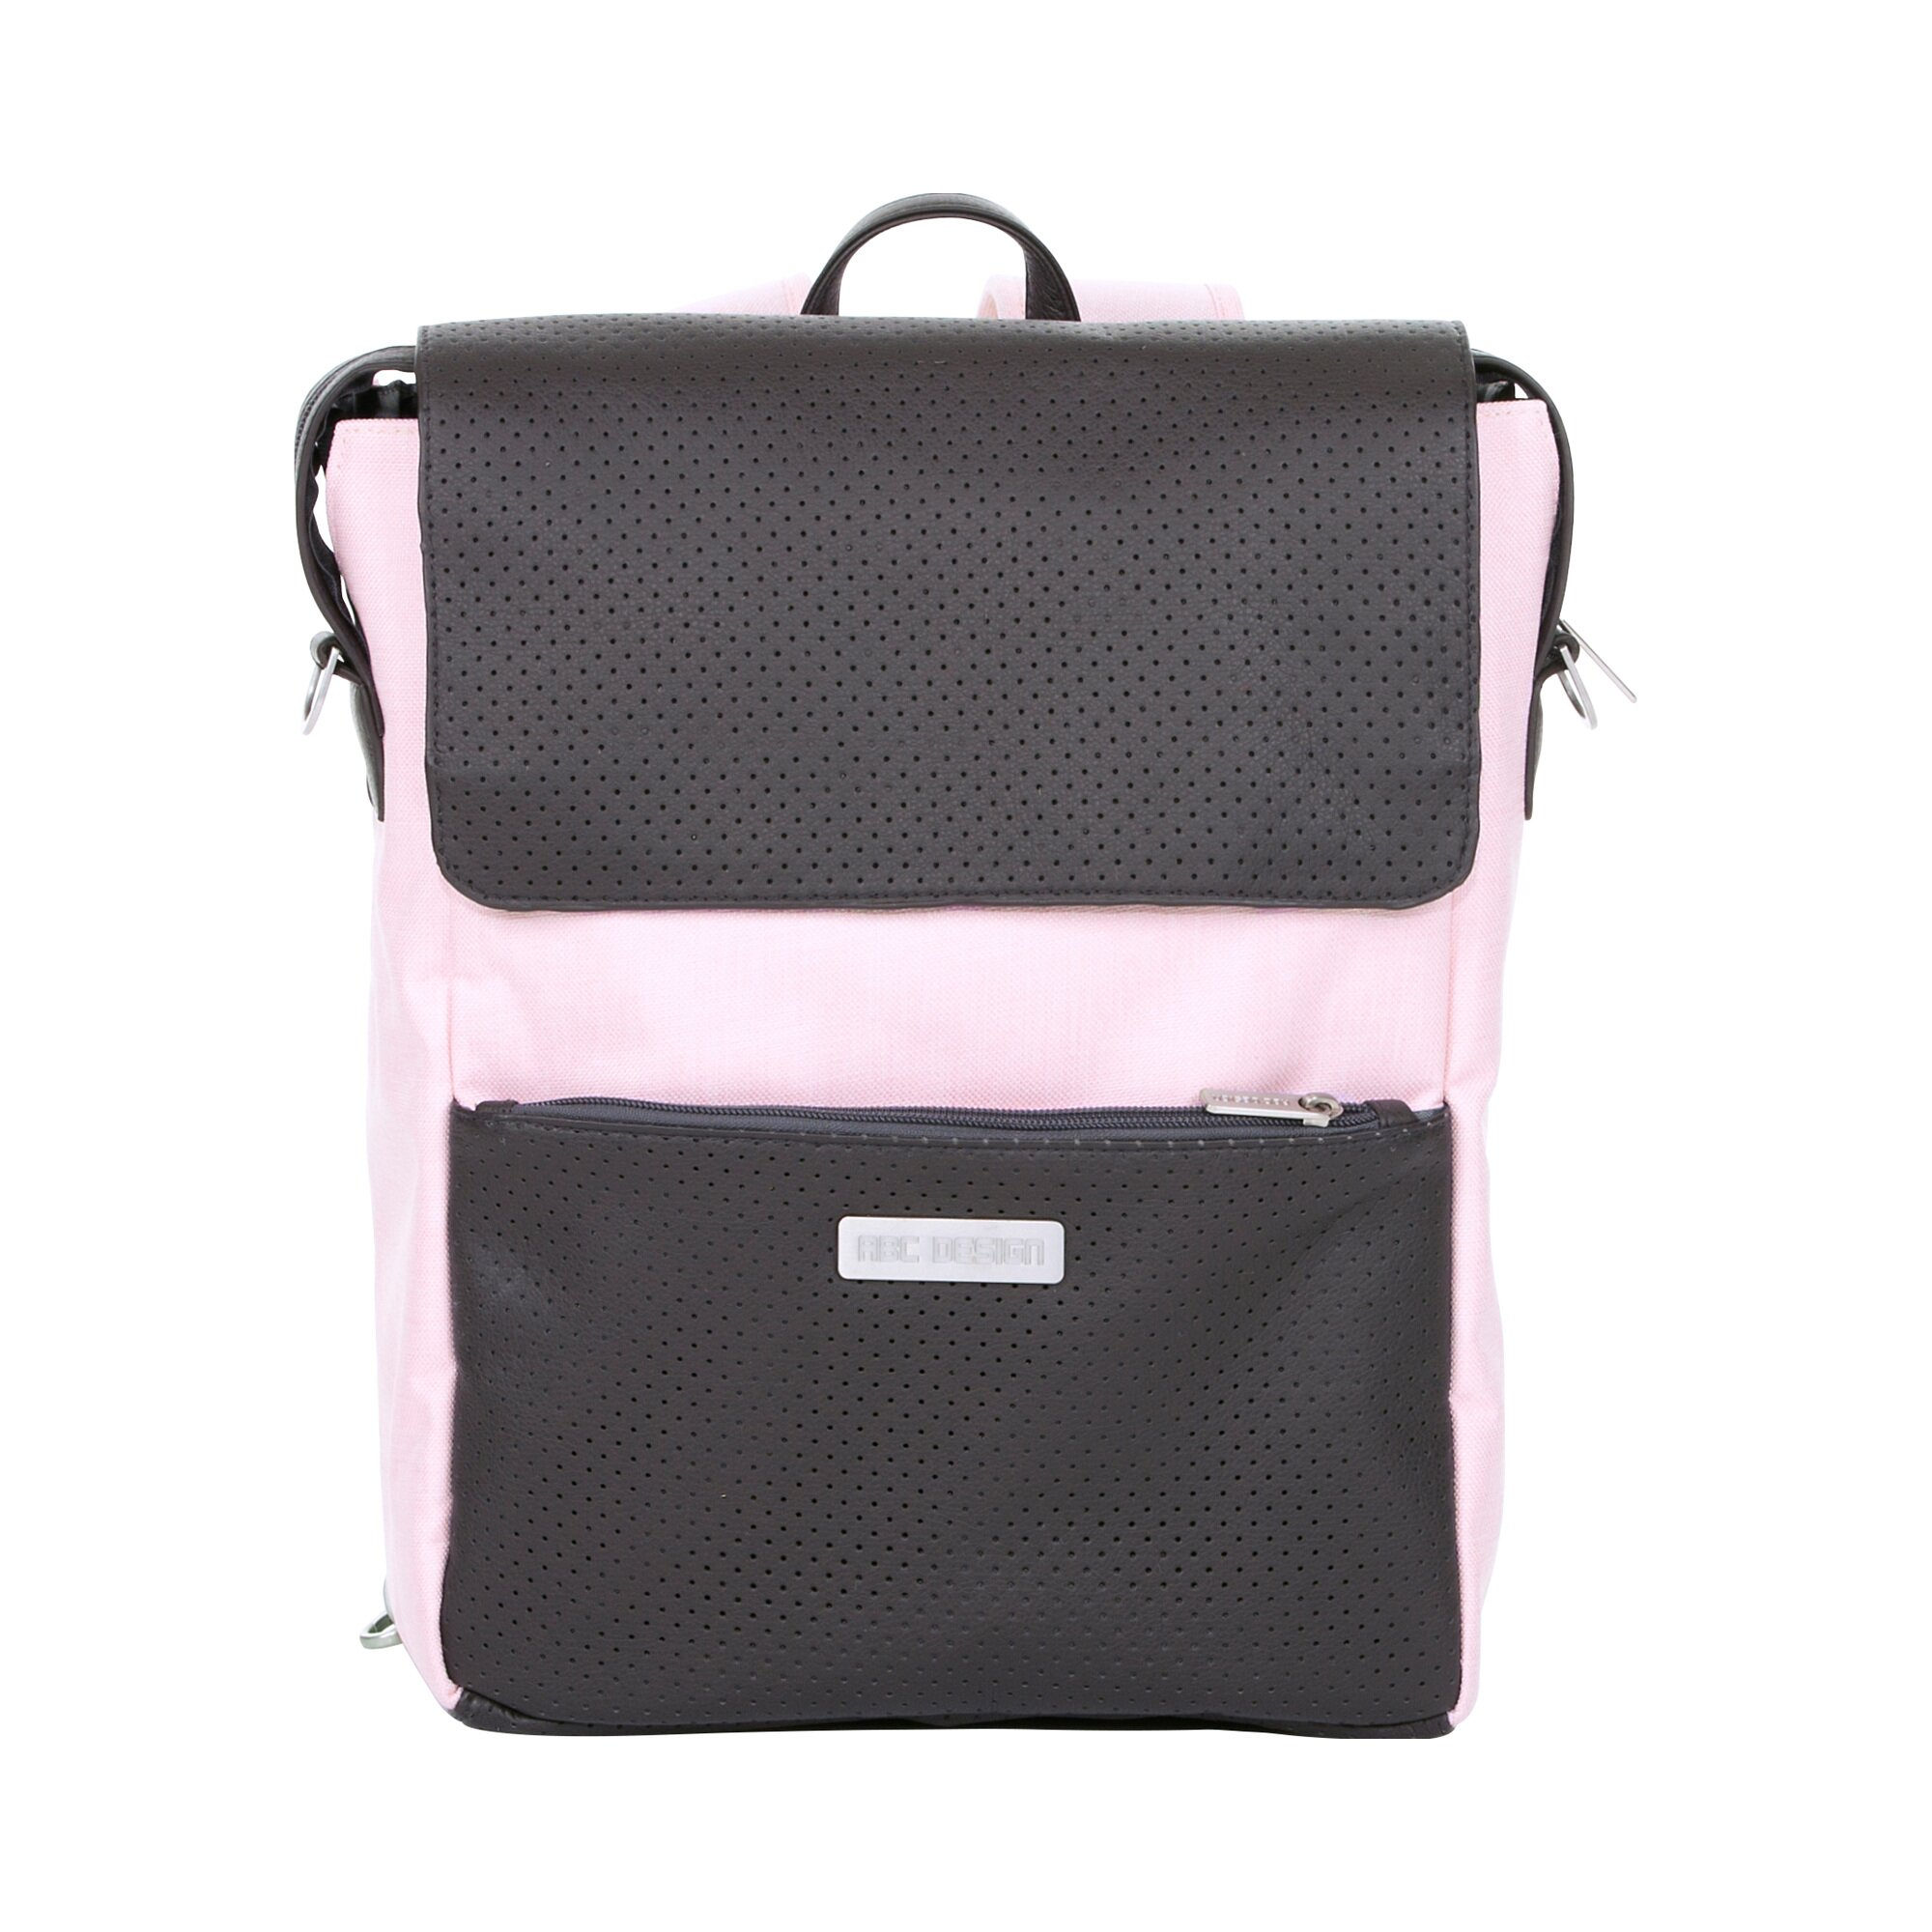 abc-design-rucksack-city-rosa